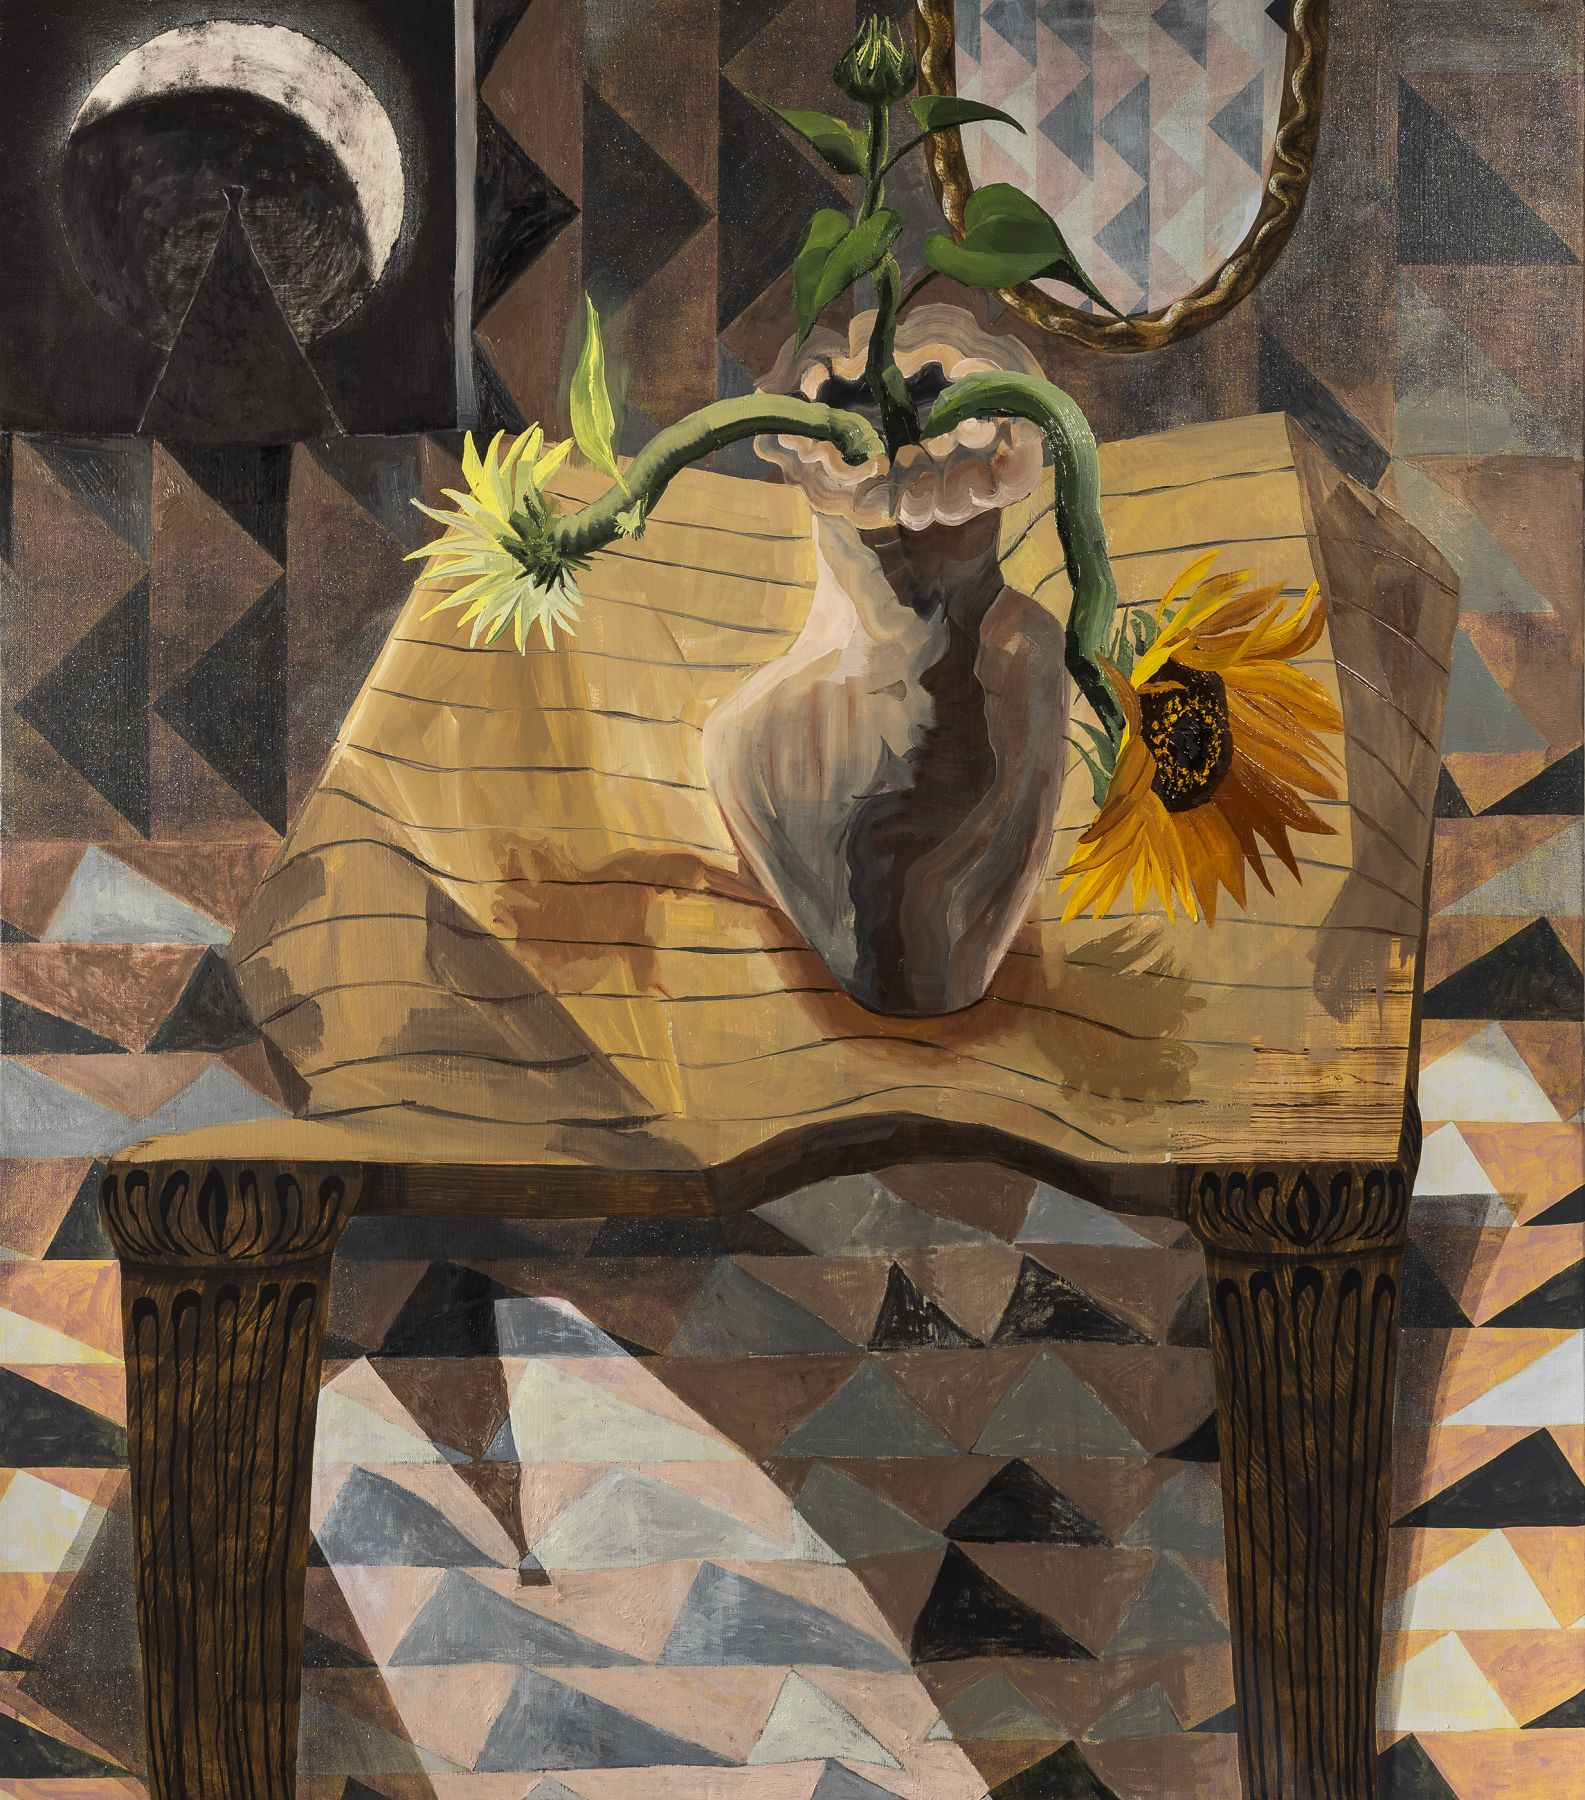 Malaska - Still Life with Moon and Flowers